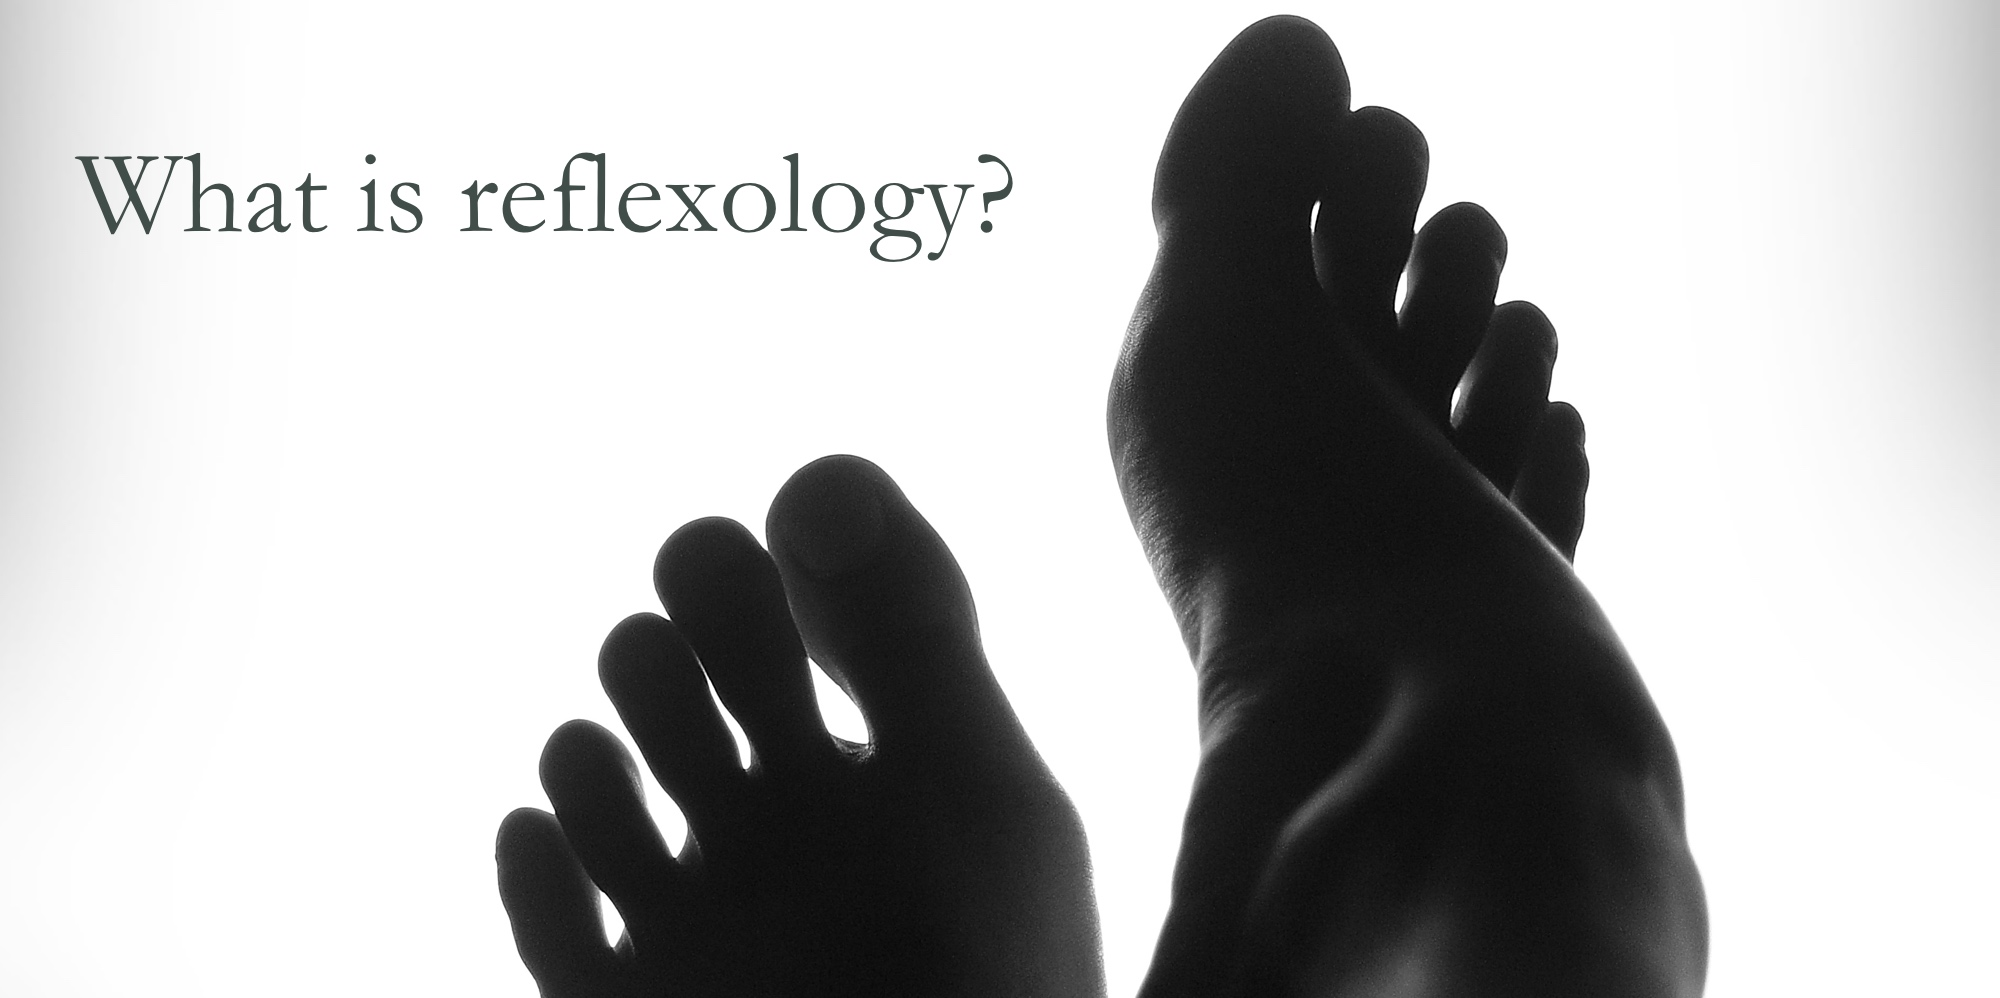 Whatisreflexology